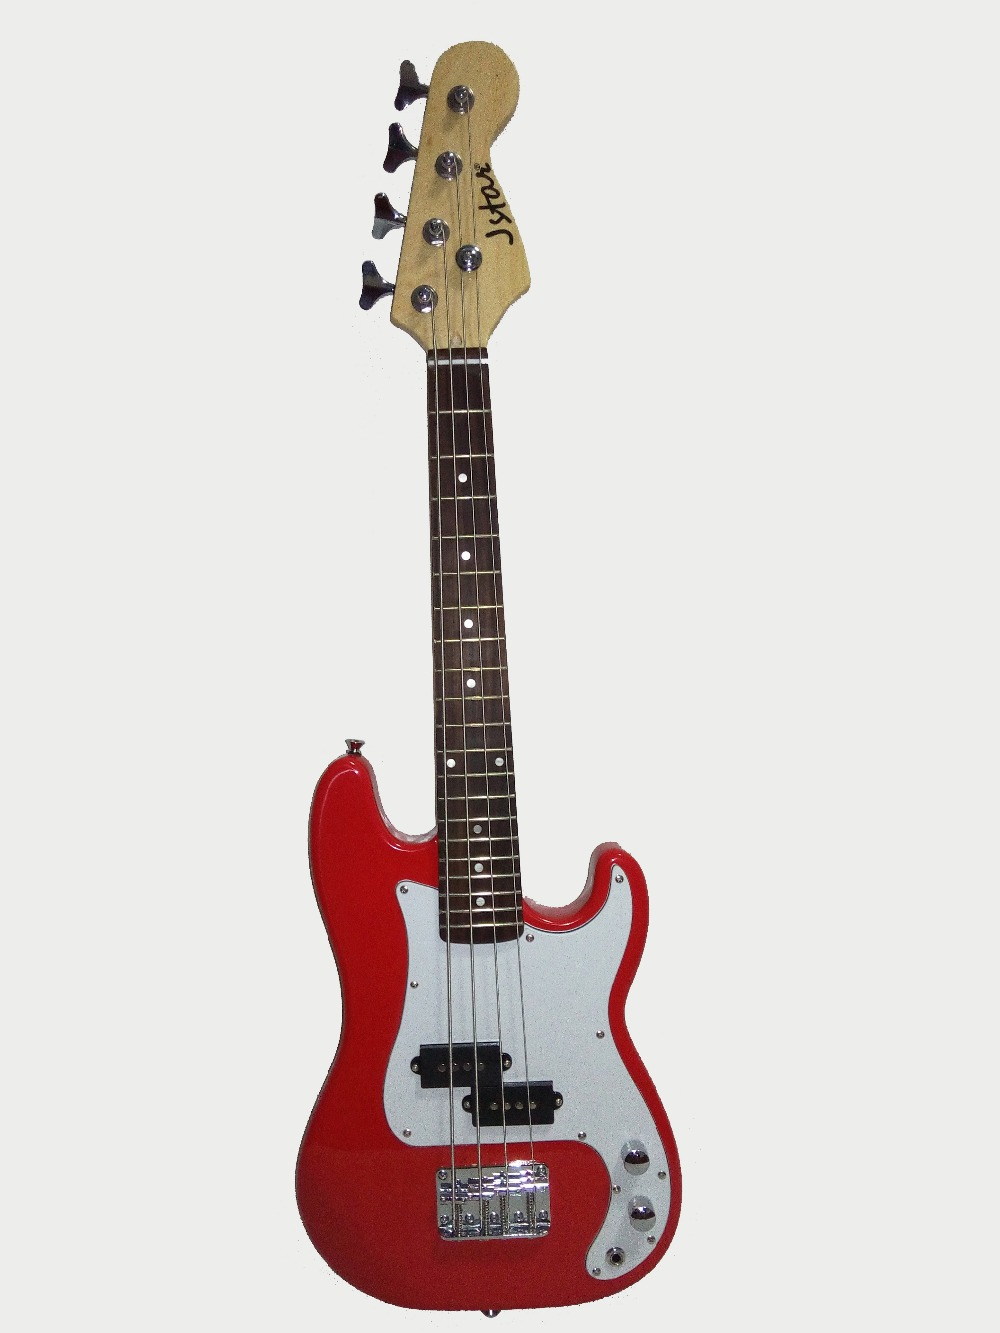 Free Shipping!34'(86cm) Jstar Kids' Electric Bass Guitar Child Electric PB Bass Guitar For Practice & Kids Band (Red,1pce Pack)